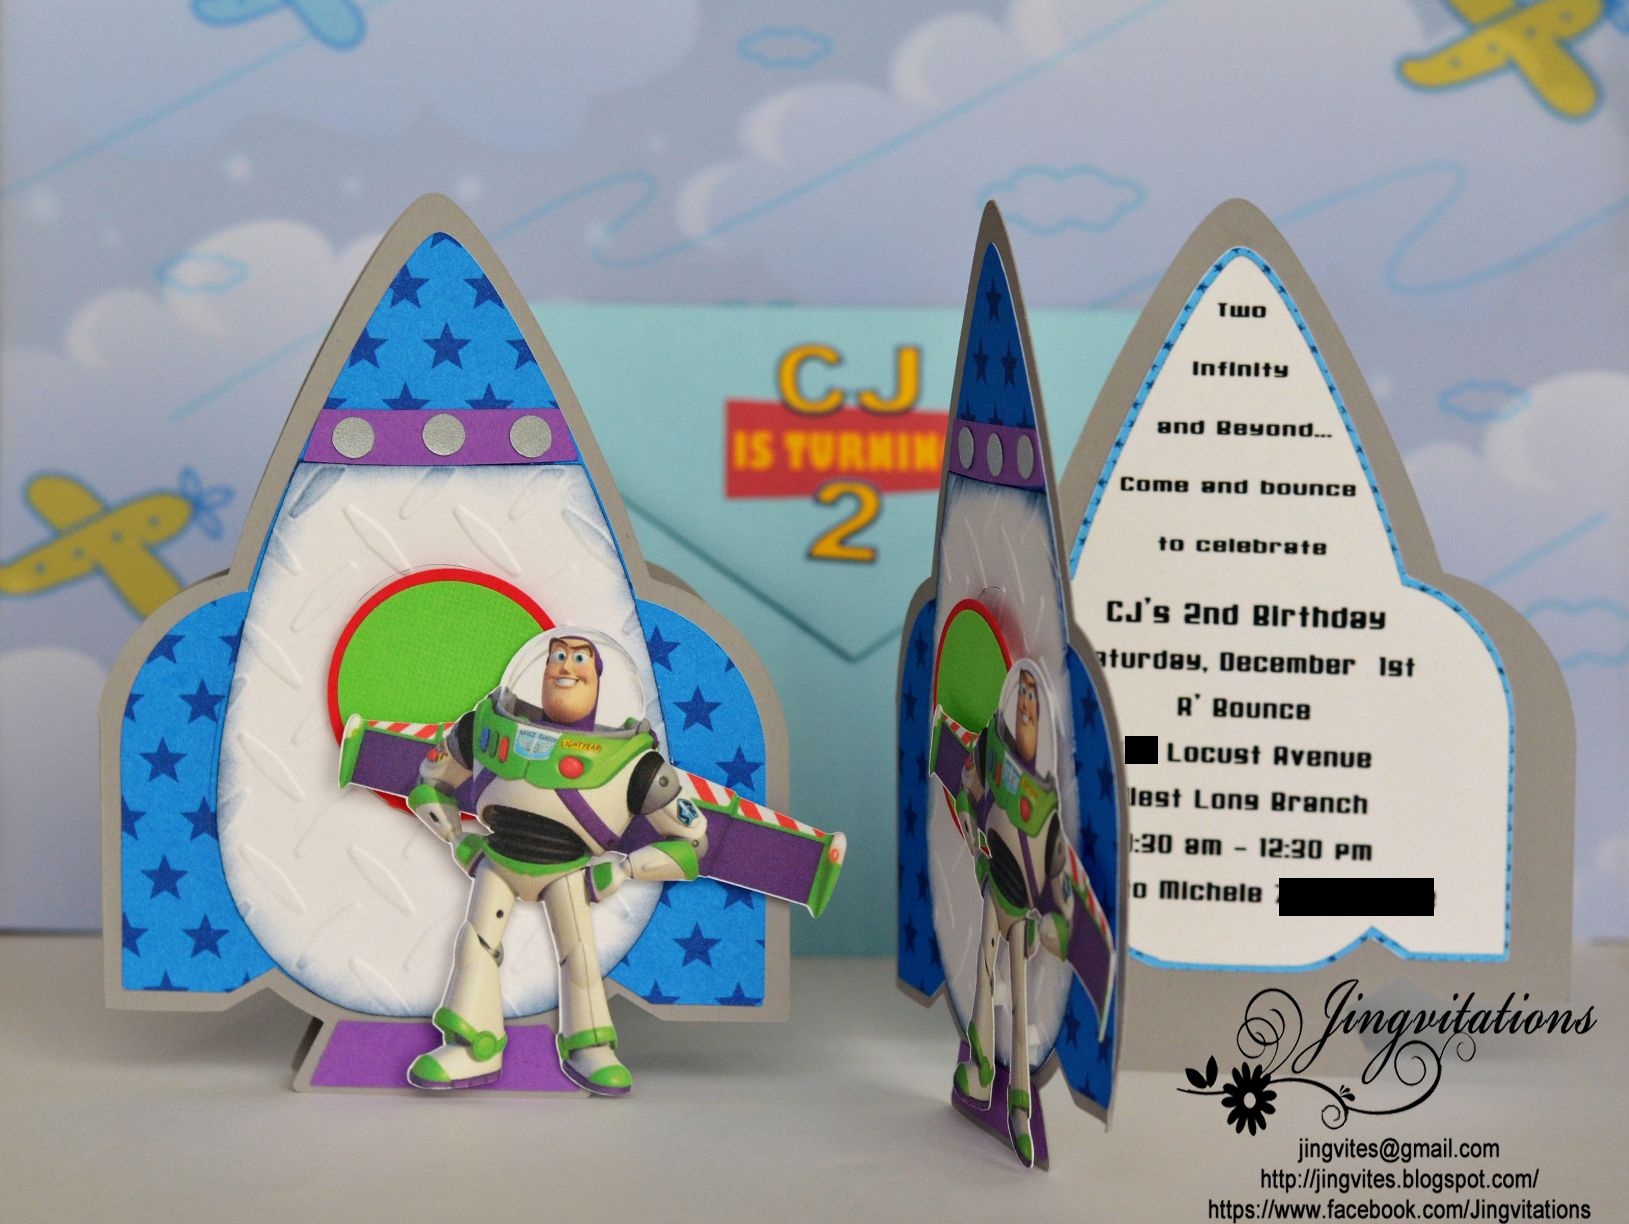 Toy story Buzz lightyear and Woody Rocketship Outerspace ...